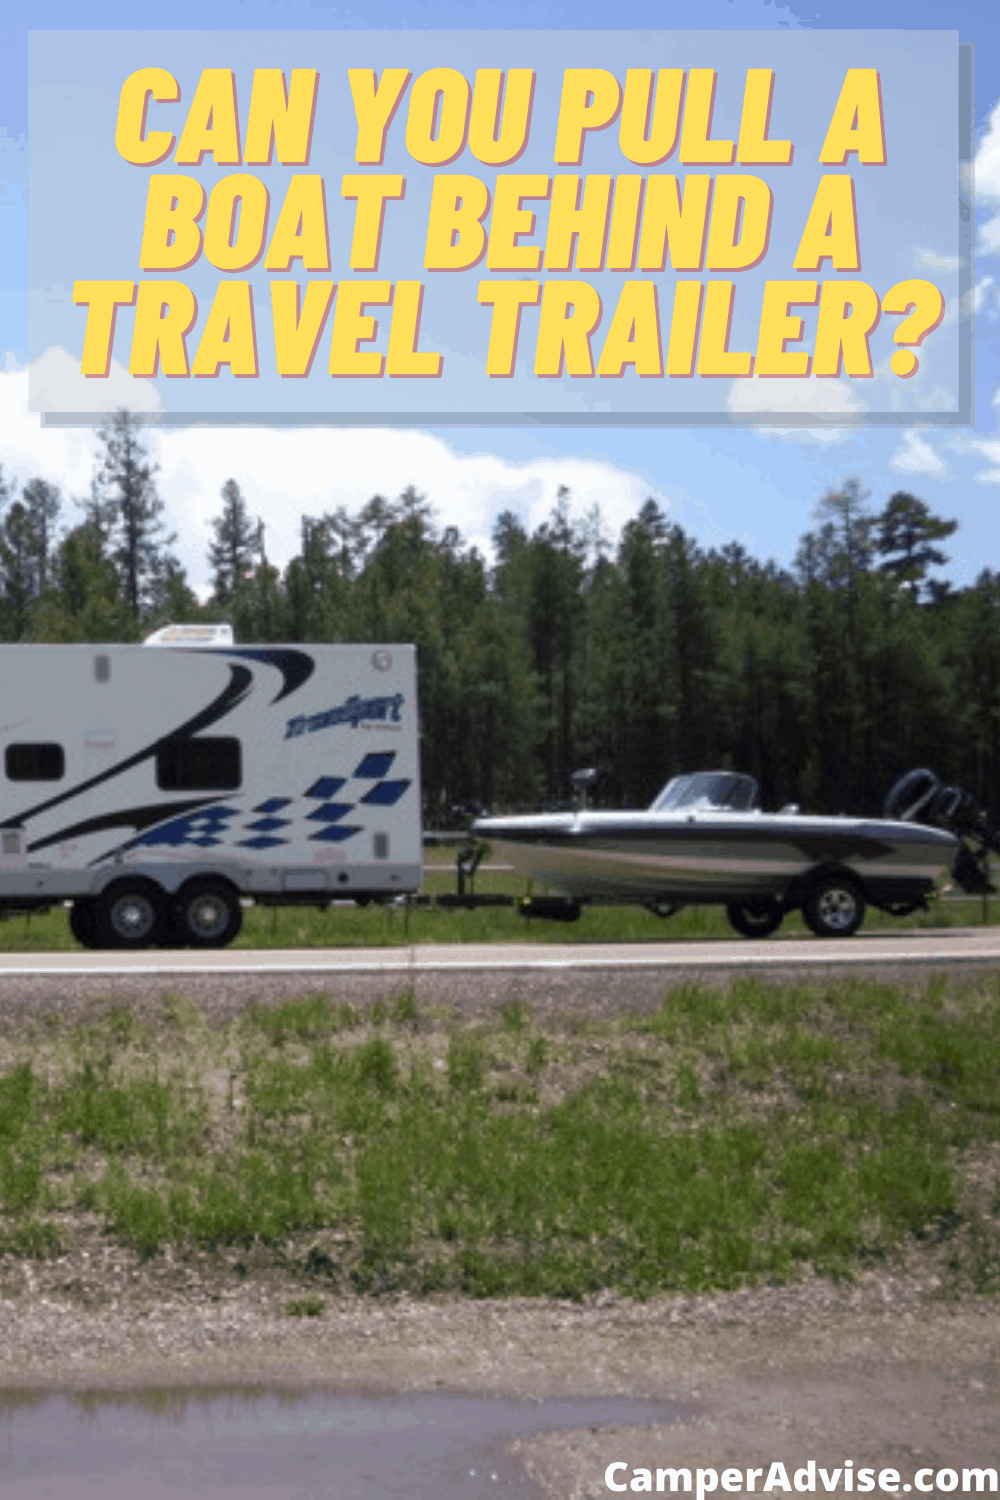 Can You Pull a Boat Behind a Travel Trailer?